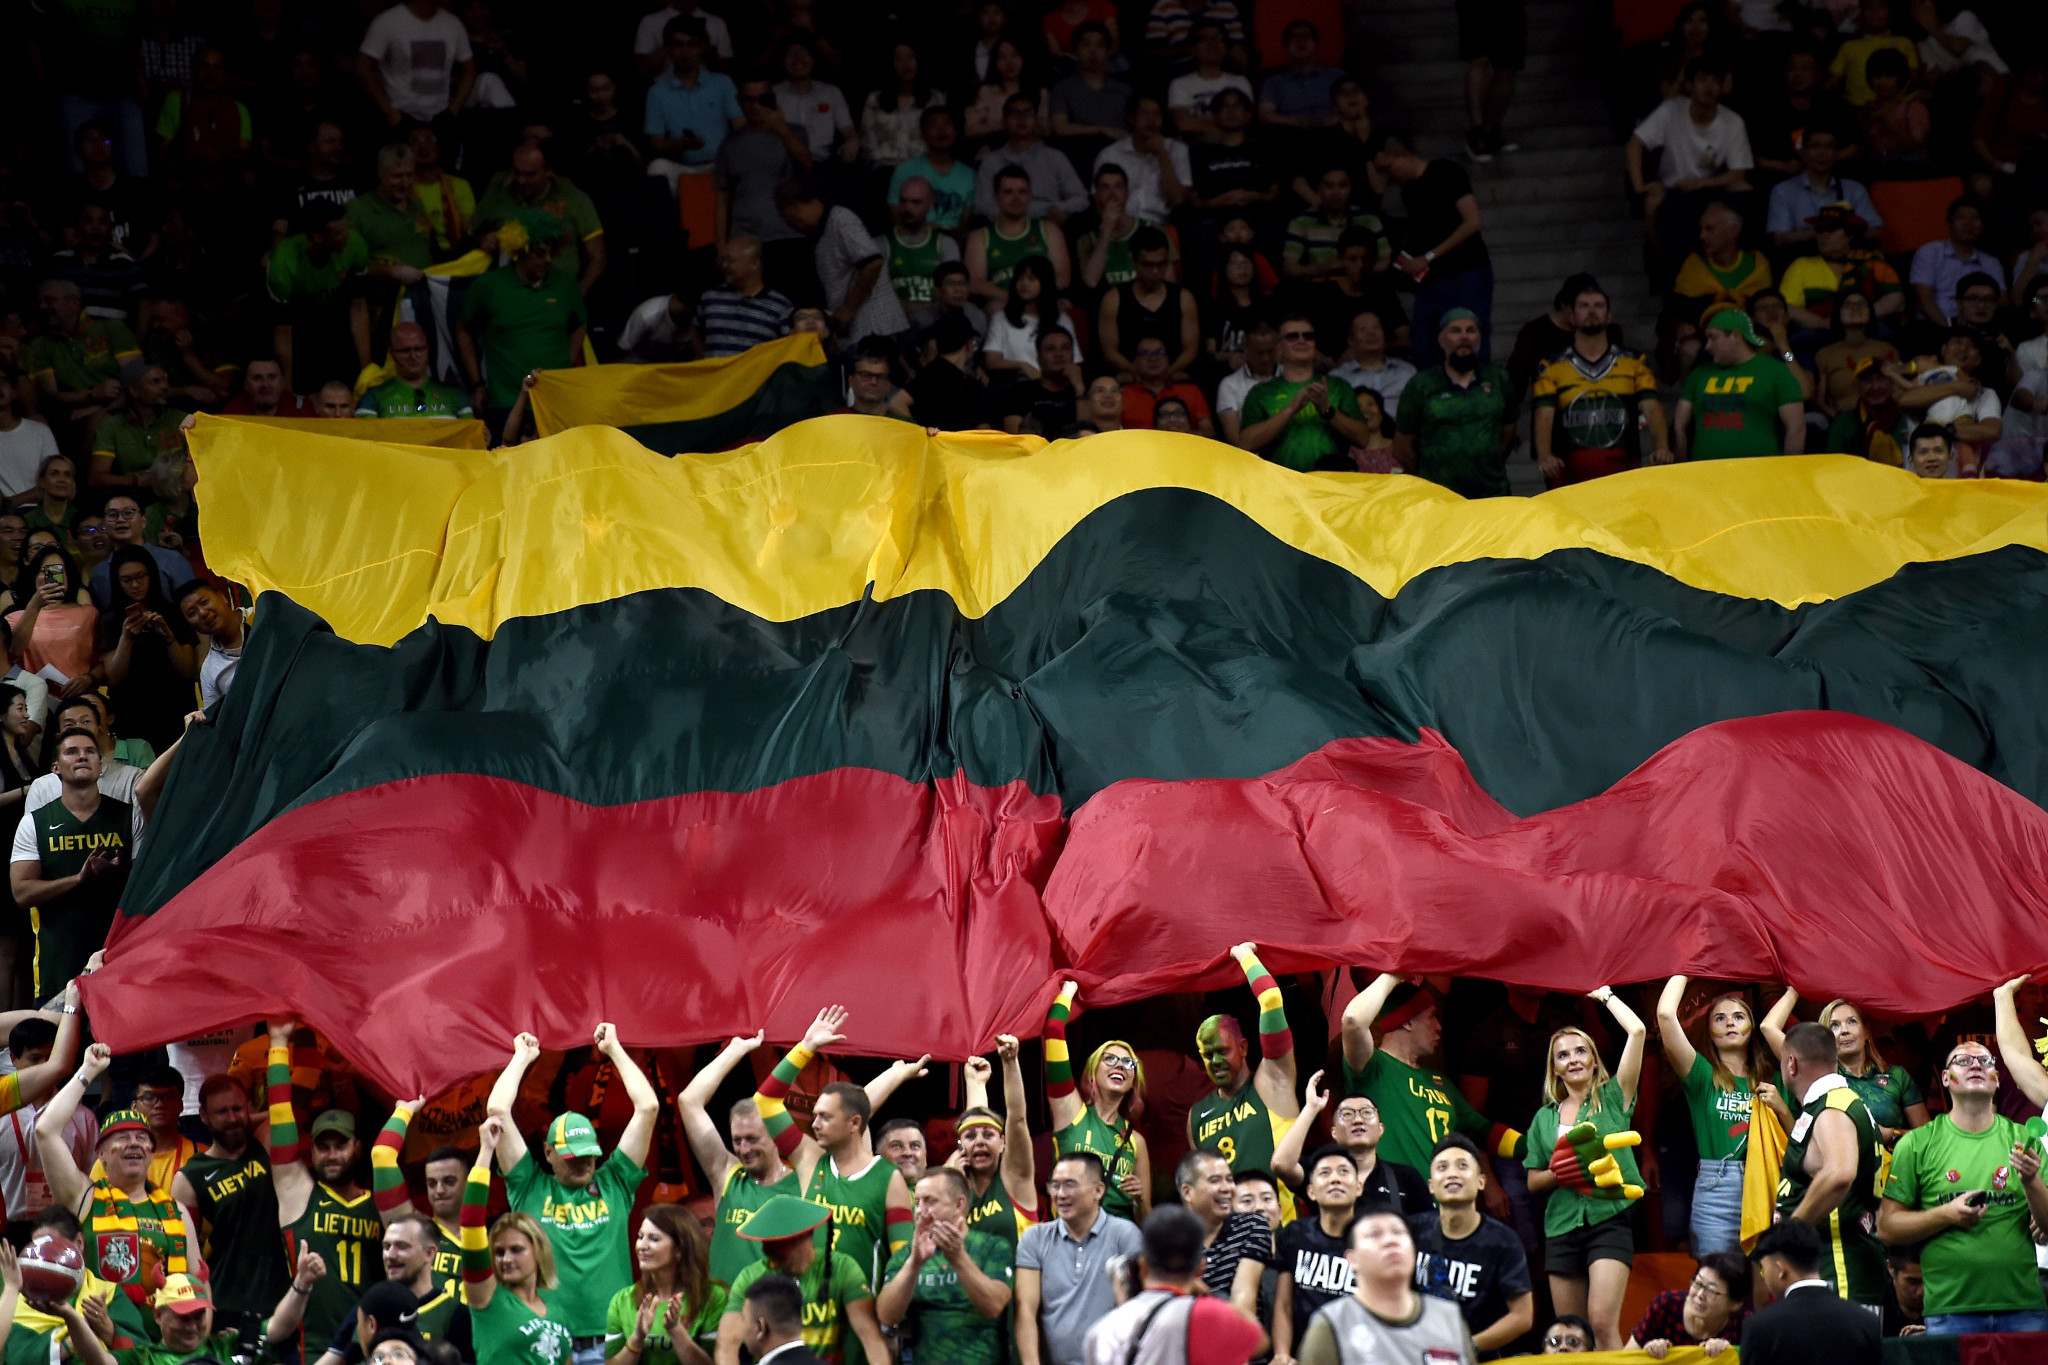 Lithuania will host next year's Men's Under-20 European Championship ©Getty Images